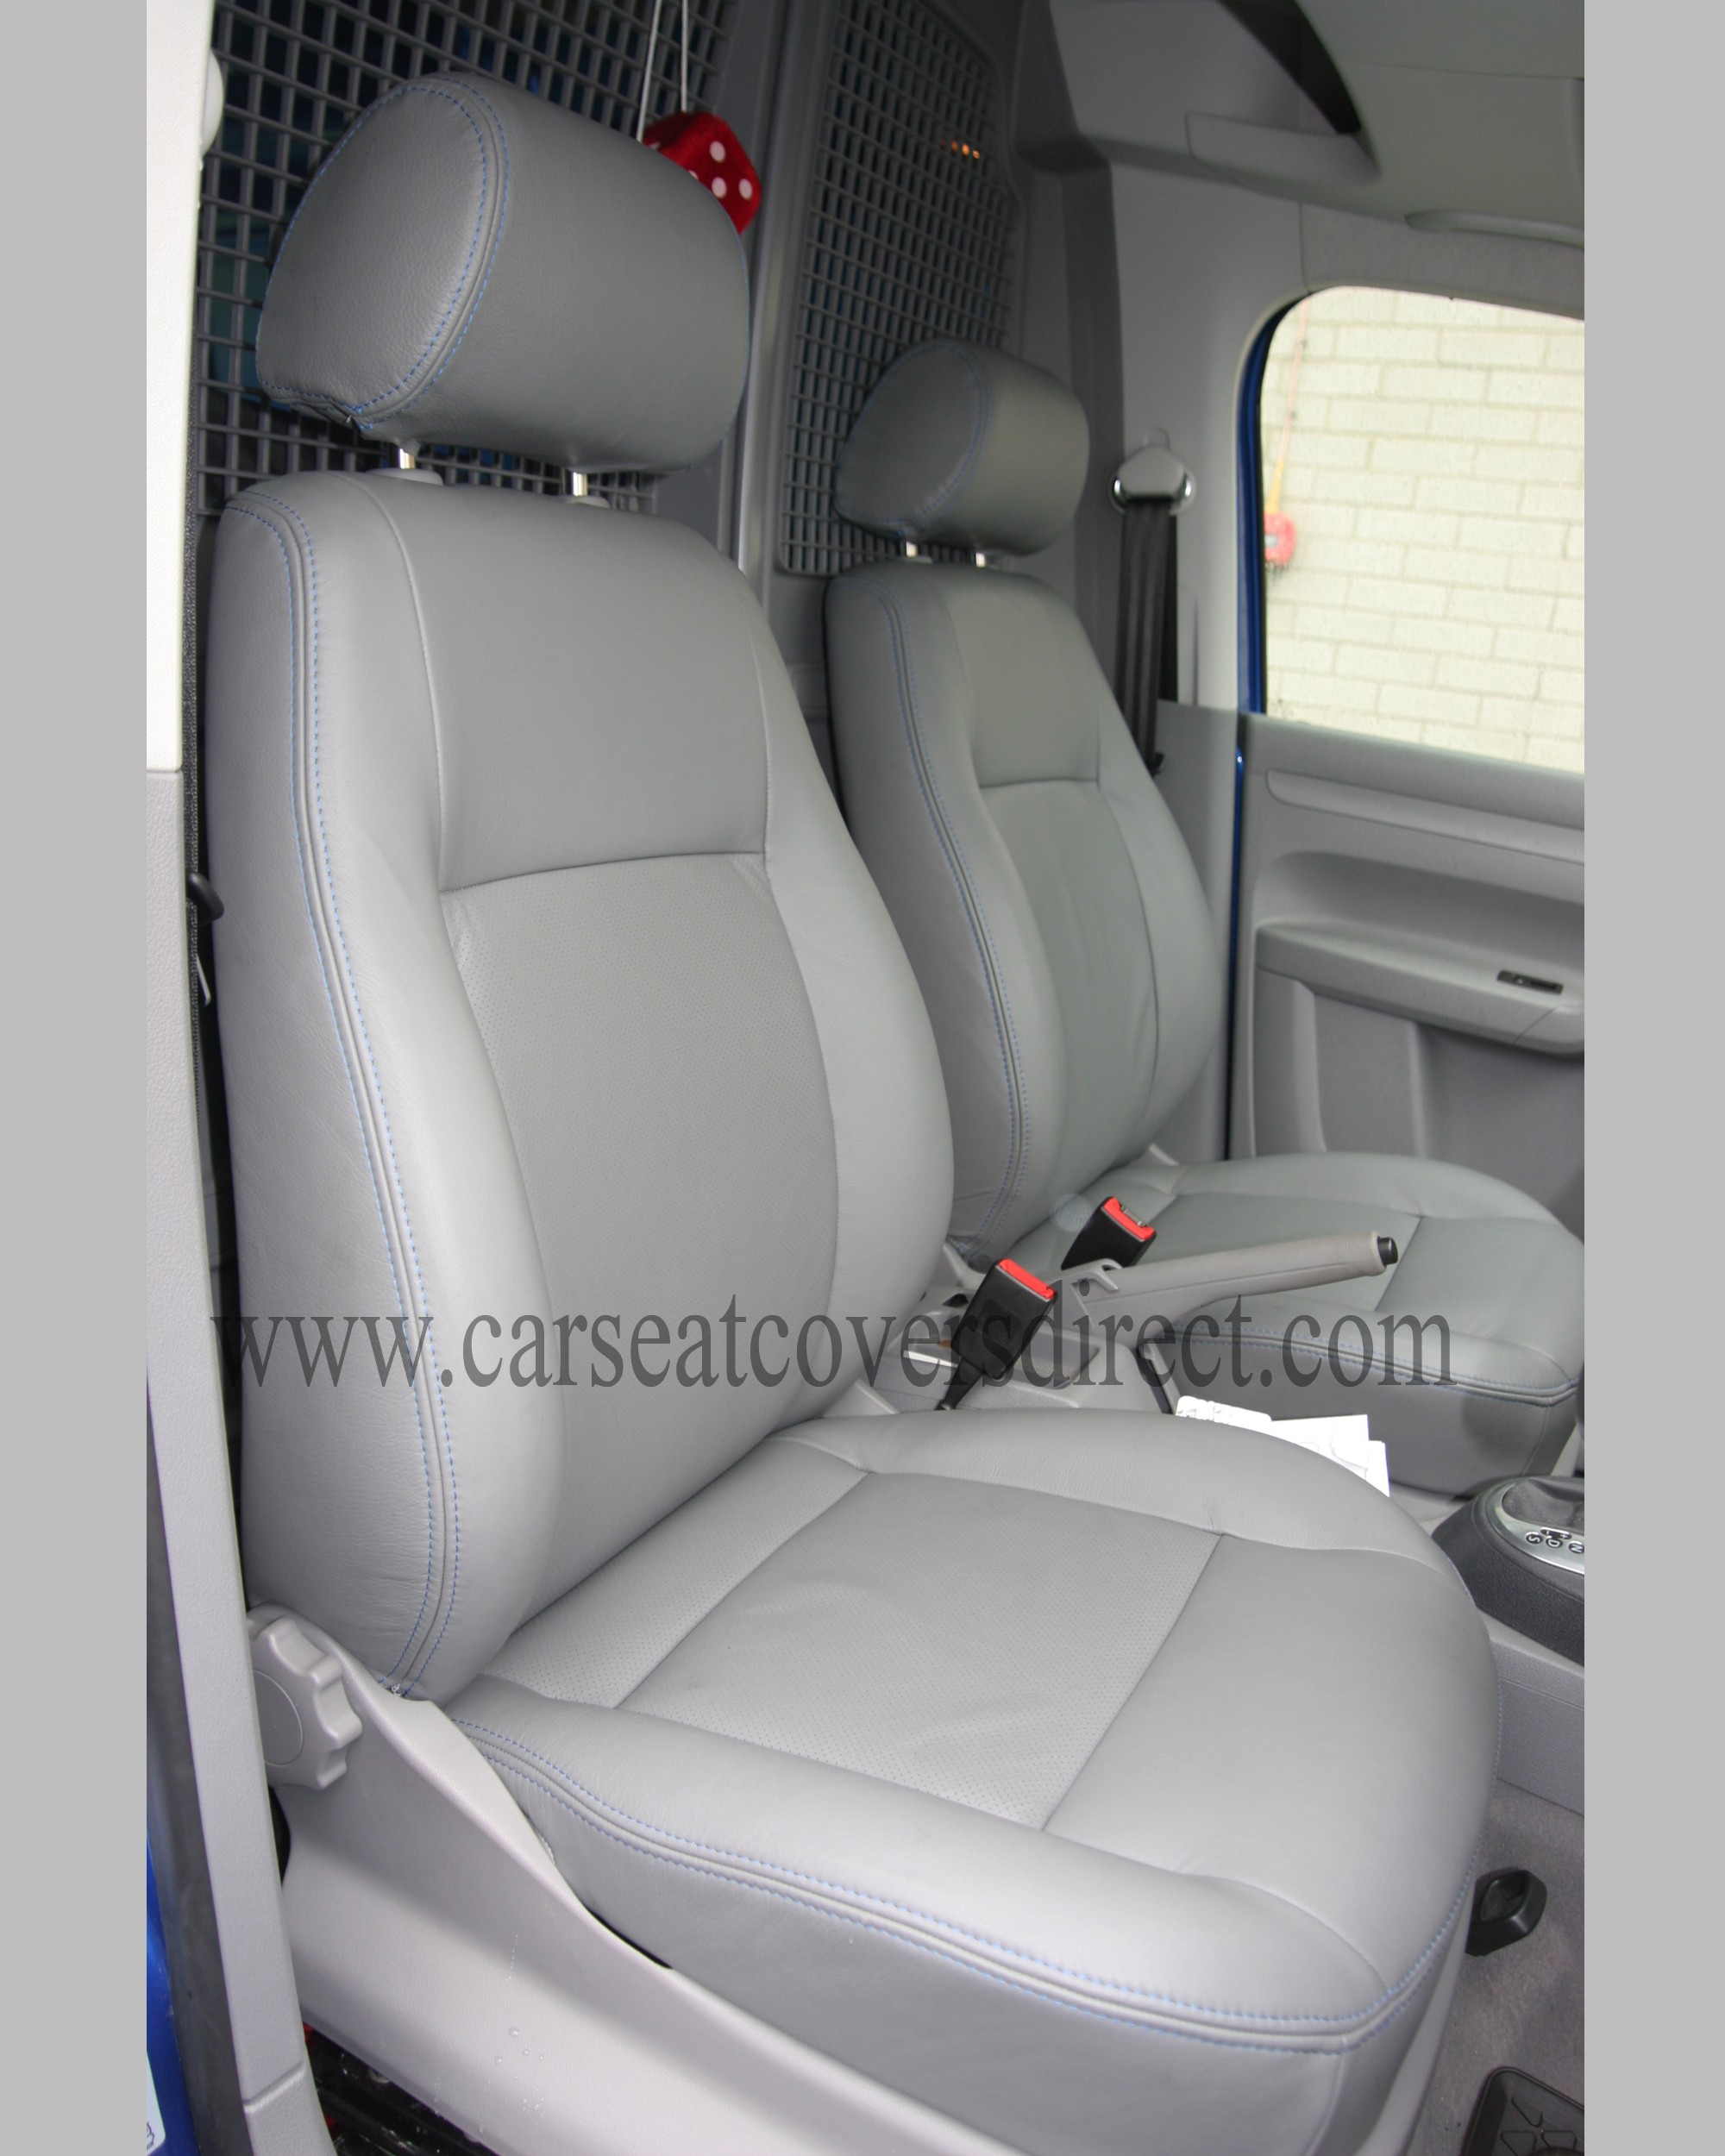 VOLKSWAGEN VW CADDY LEATHER RETRIM